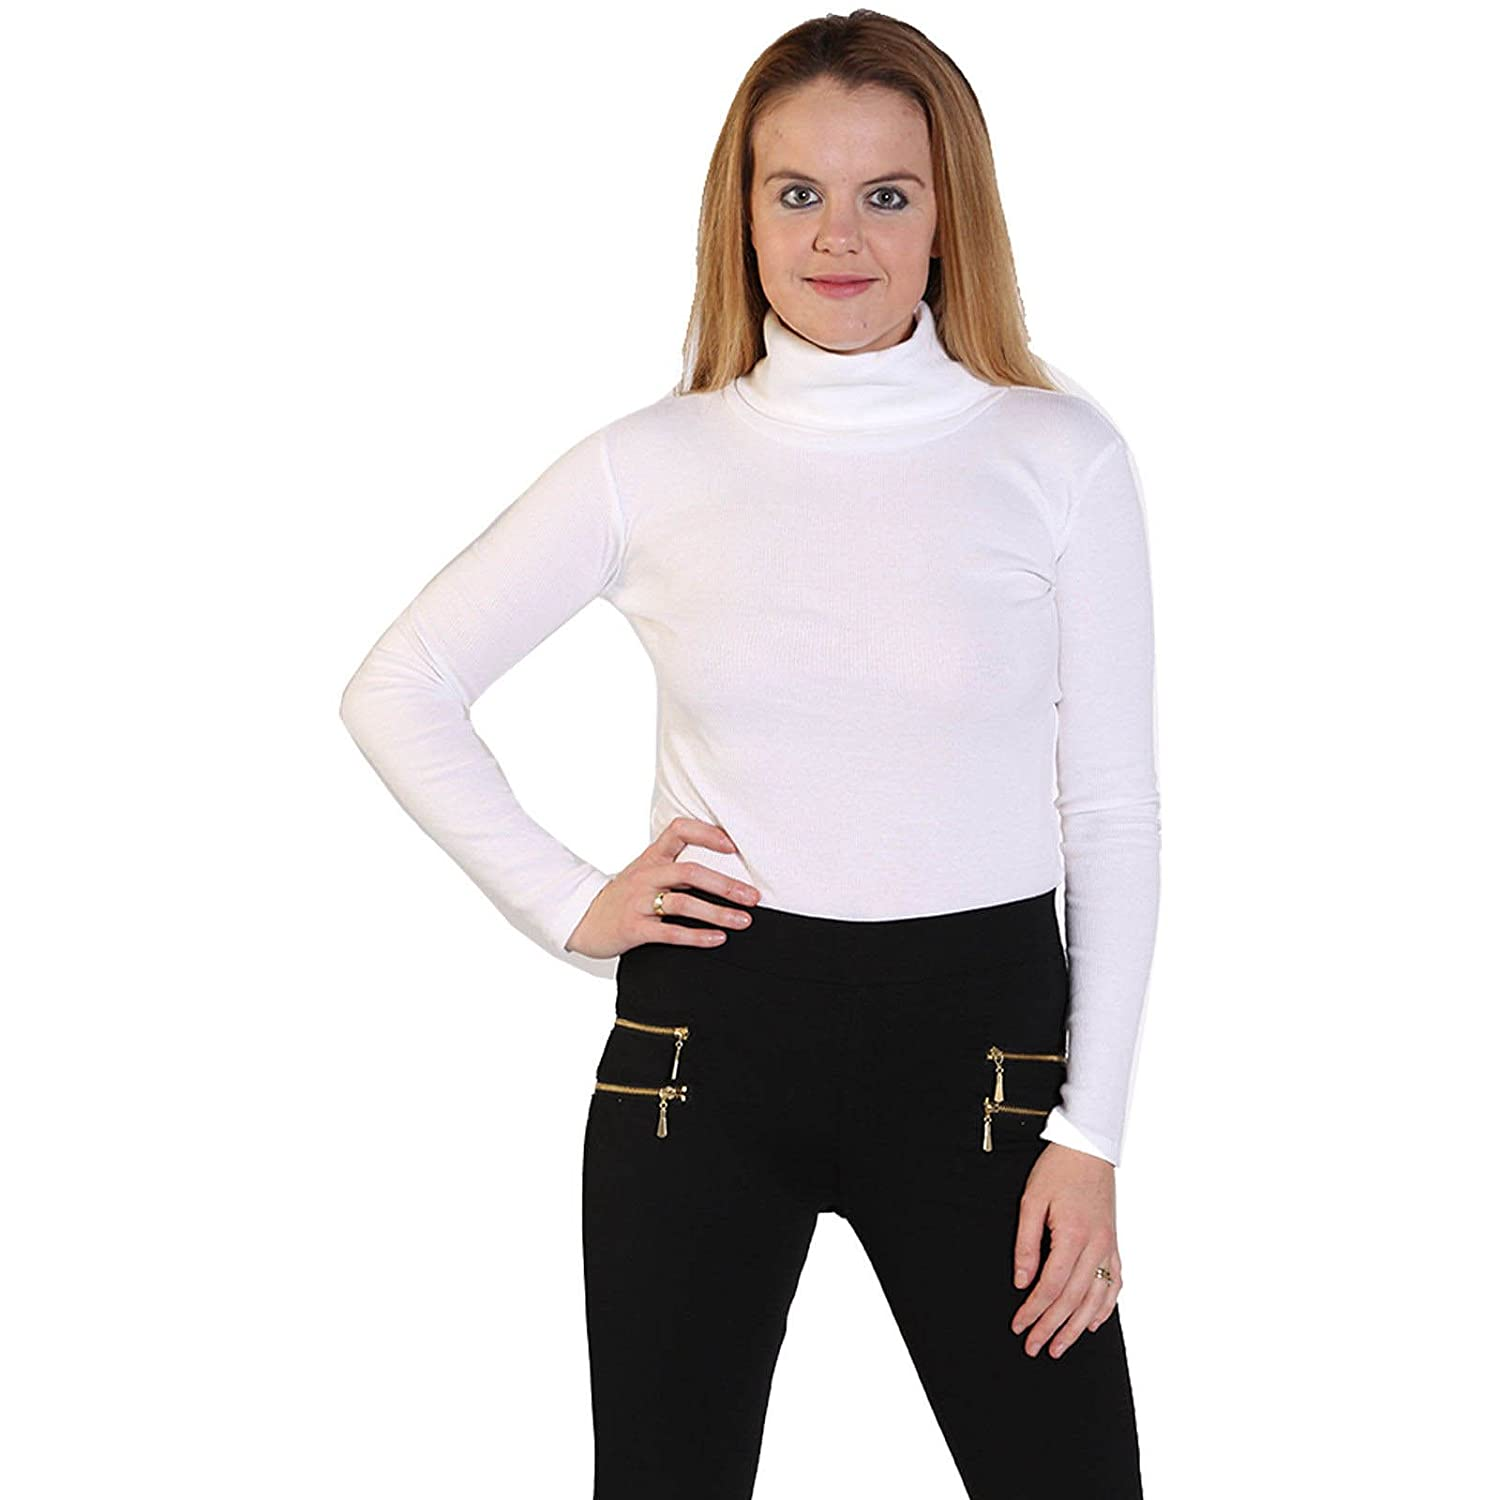 c837be2b4f143a LUSH CLOTHING-12A-LADIES COTTON RIBBED POLO ROLL NECK LONG SLEEVE JUMPER  TOP-UK SIZE 8-22 (M/L = UK 12-14, White): Amazon.co.uk: Clothing